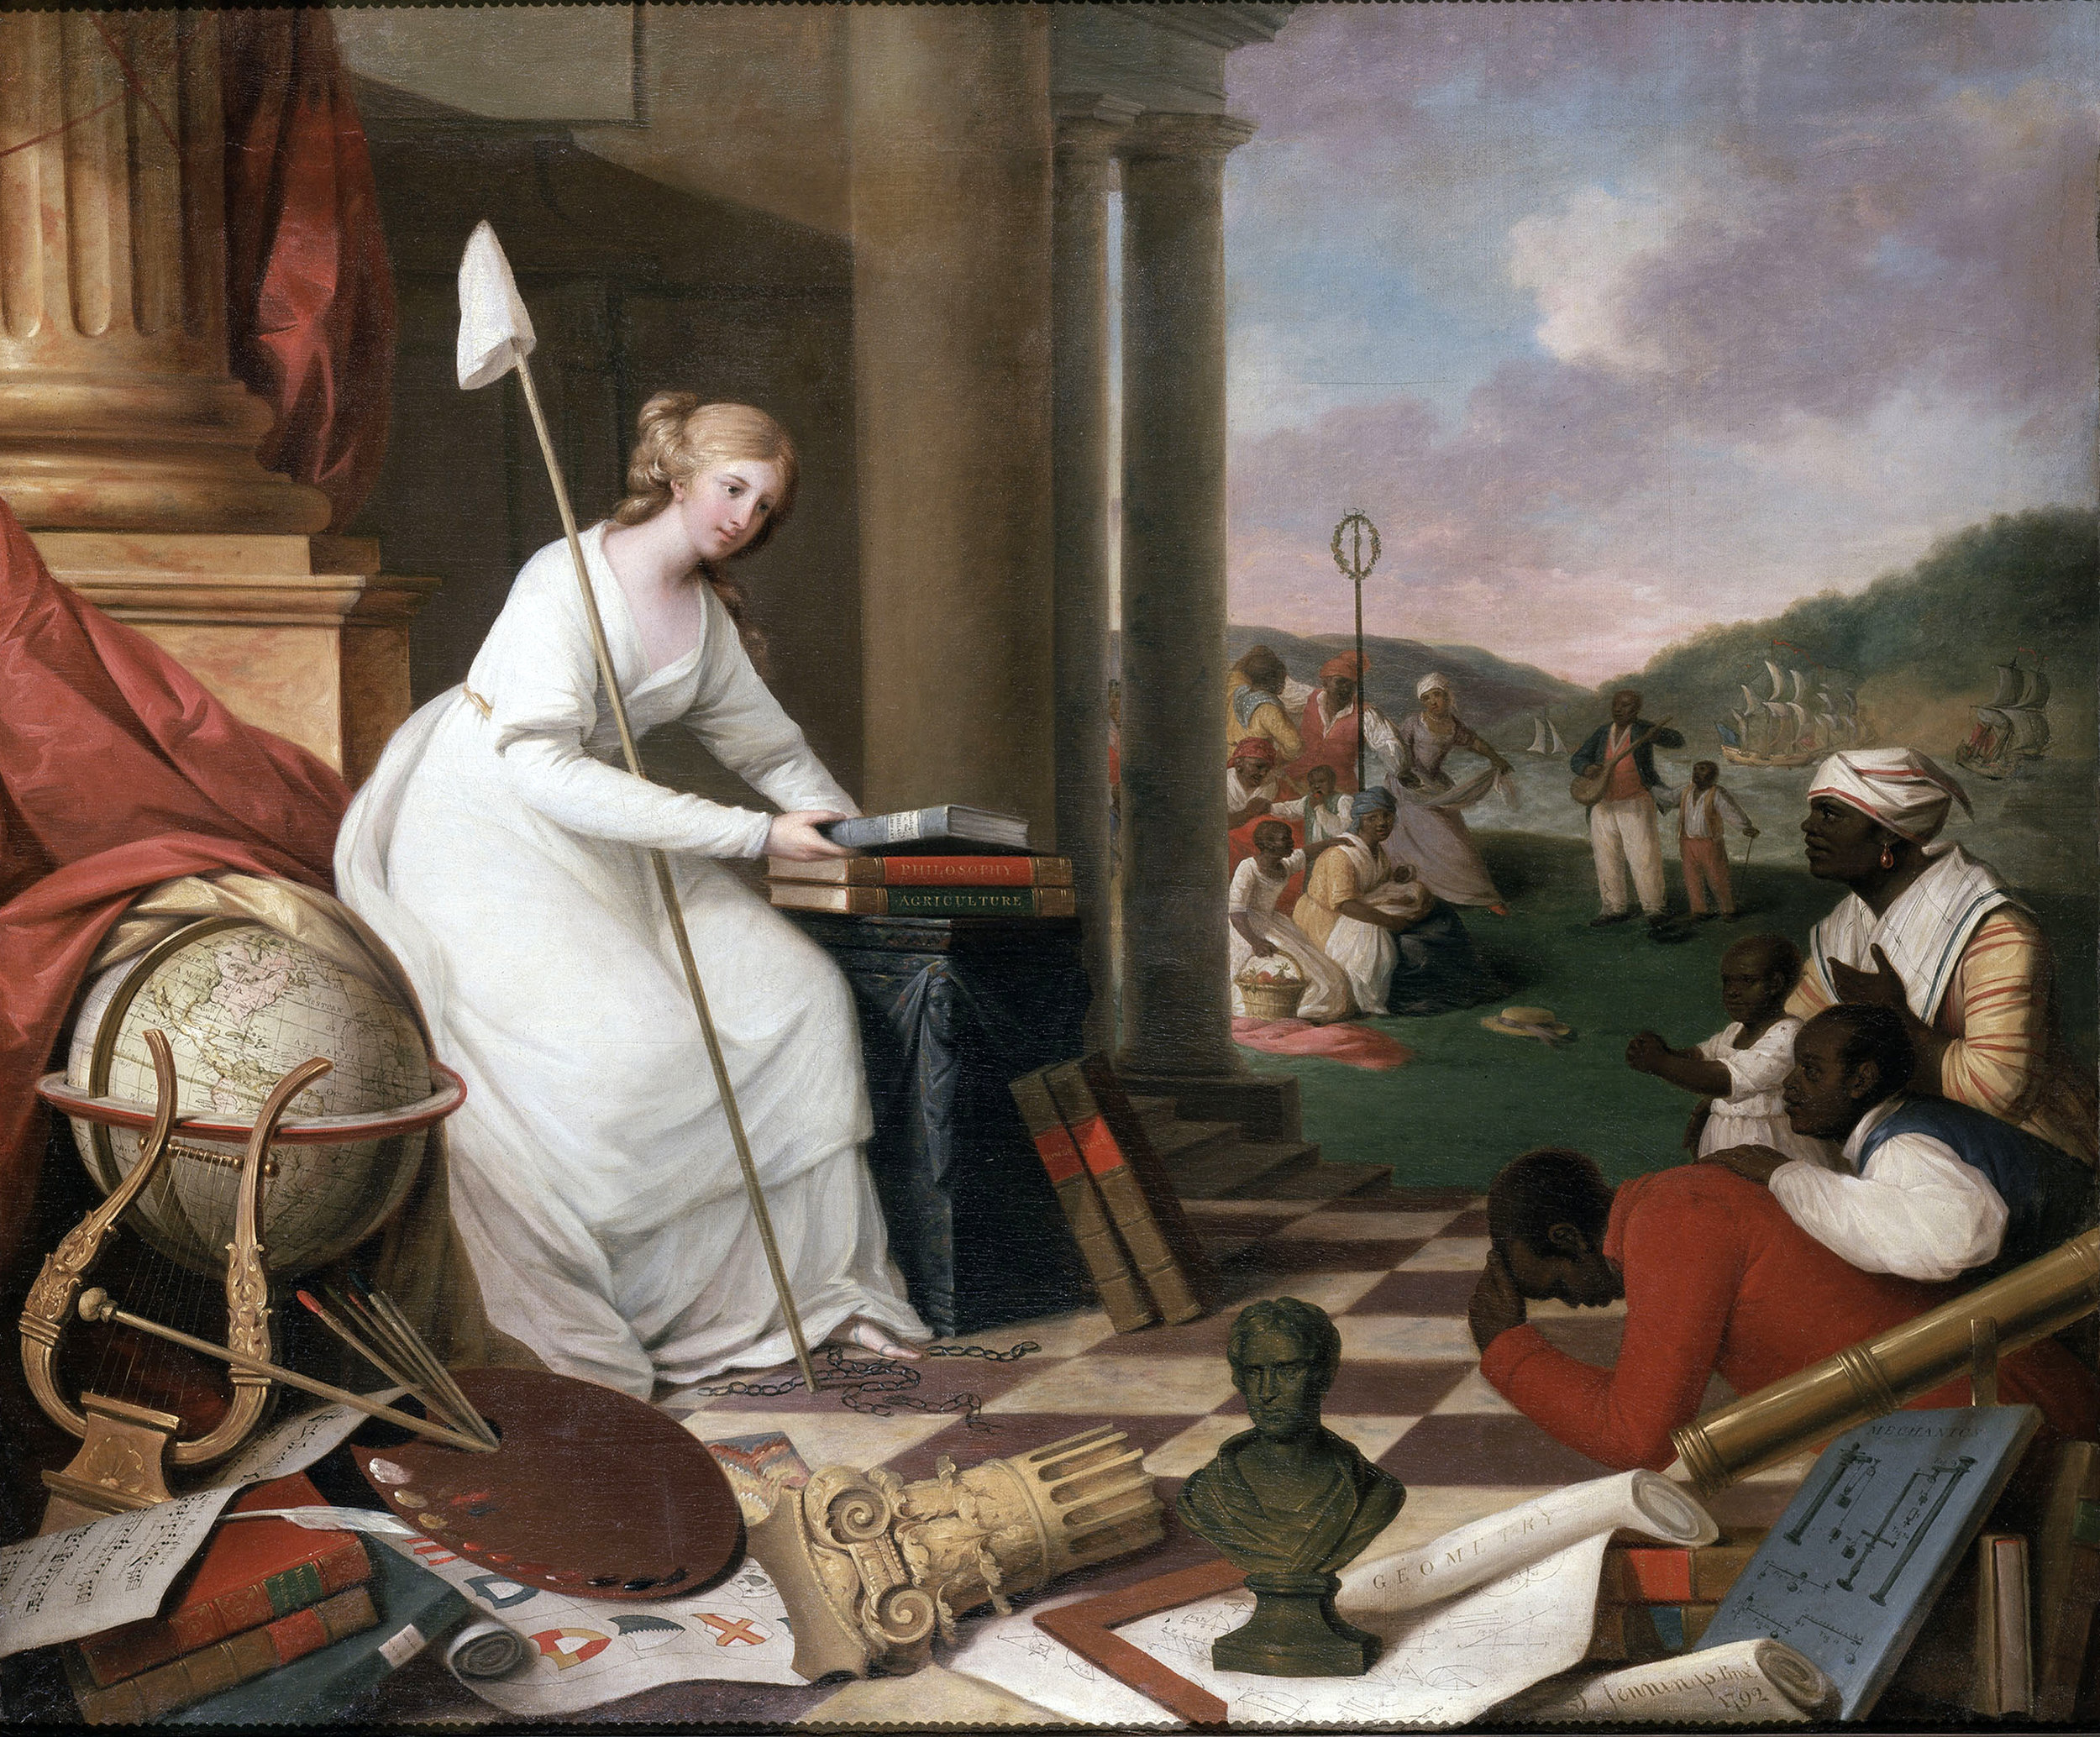 Liberty Displaying the Arts and Sciences (1792) is an oil-on-canvas painting by American artist Samuel Jennings. The Library Company of Philadelphia